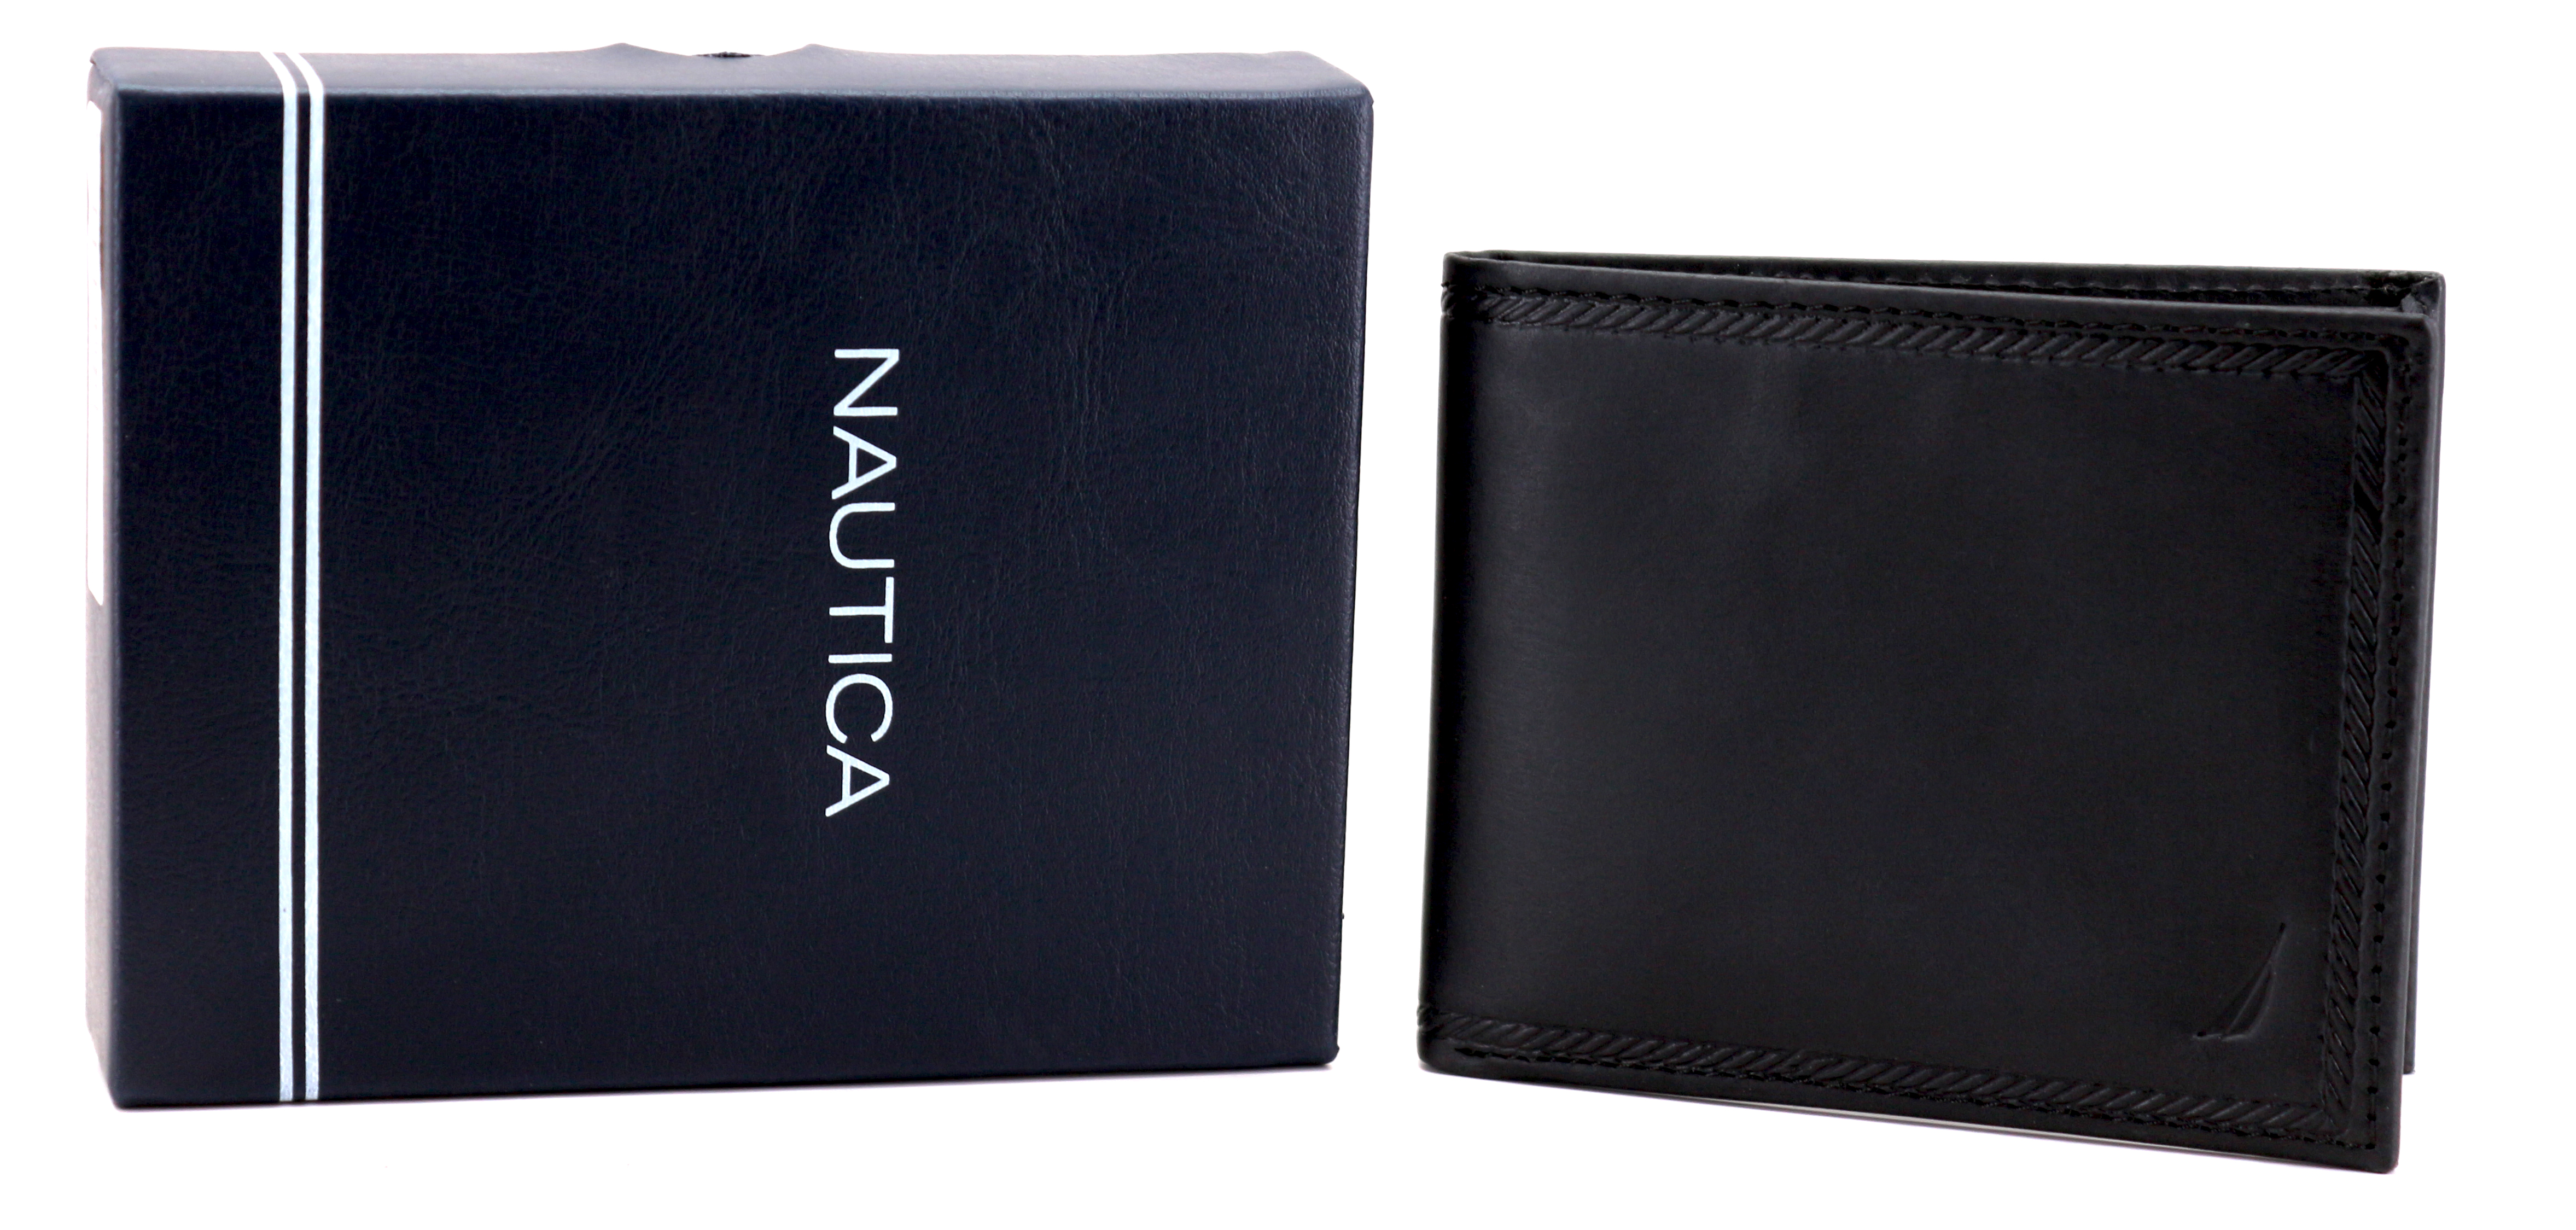 Nautica-Men-039-s-Genuine-Vintage-Leather-Credit-Card-ID-Billfold-Passcase-Wallet thumbnail 8